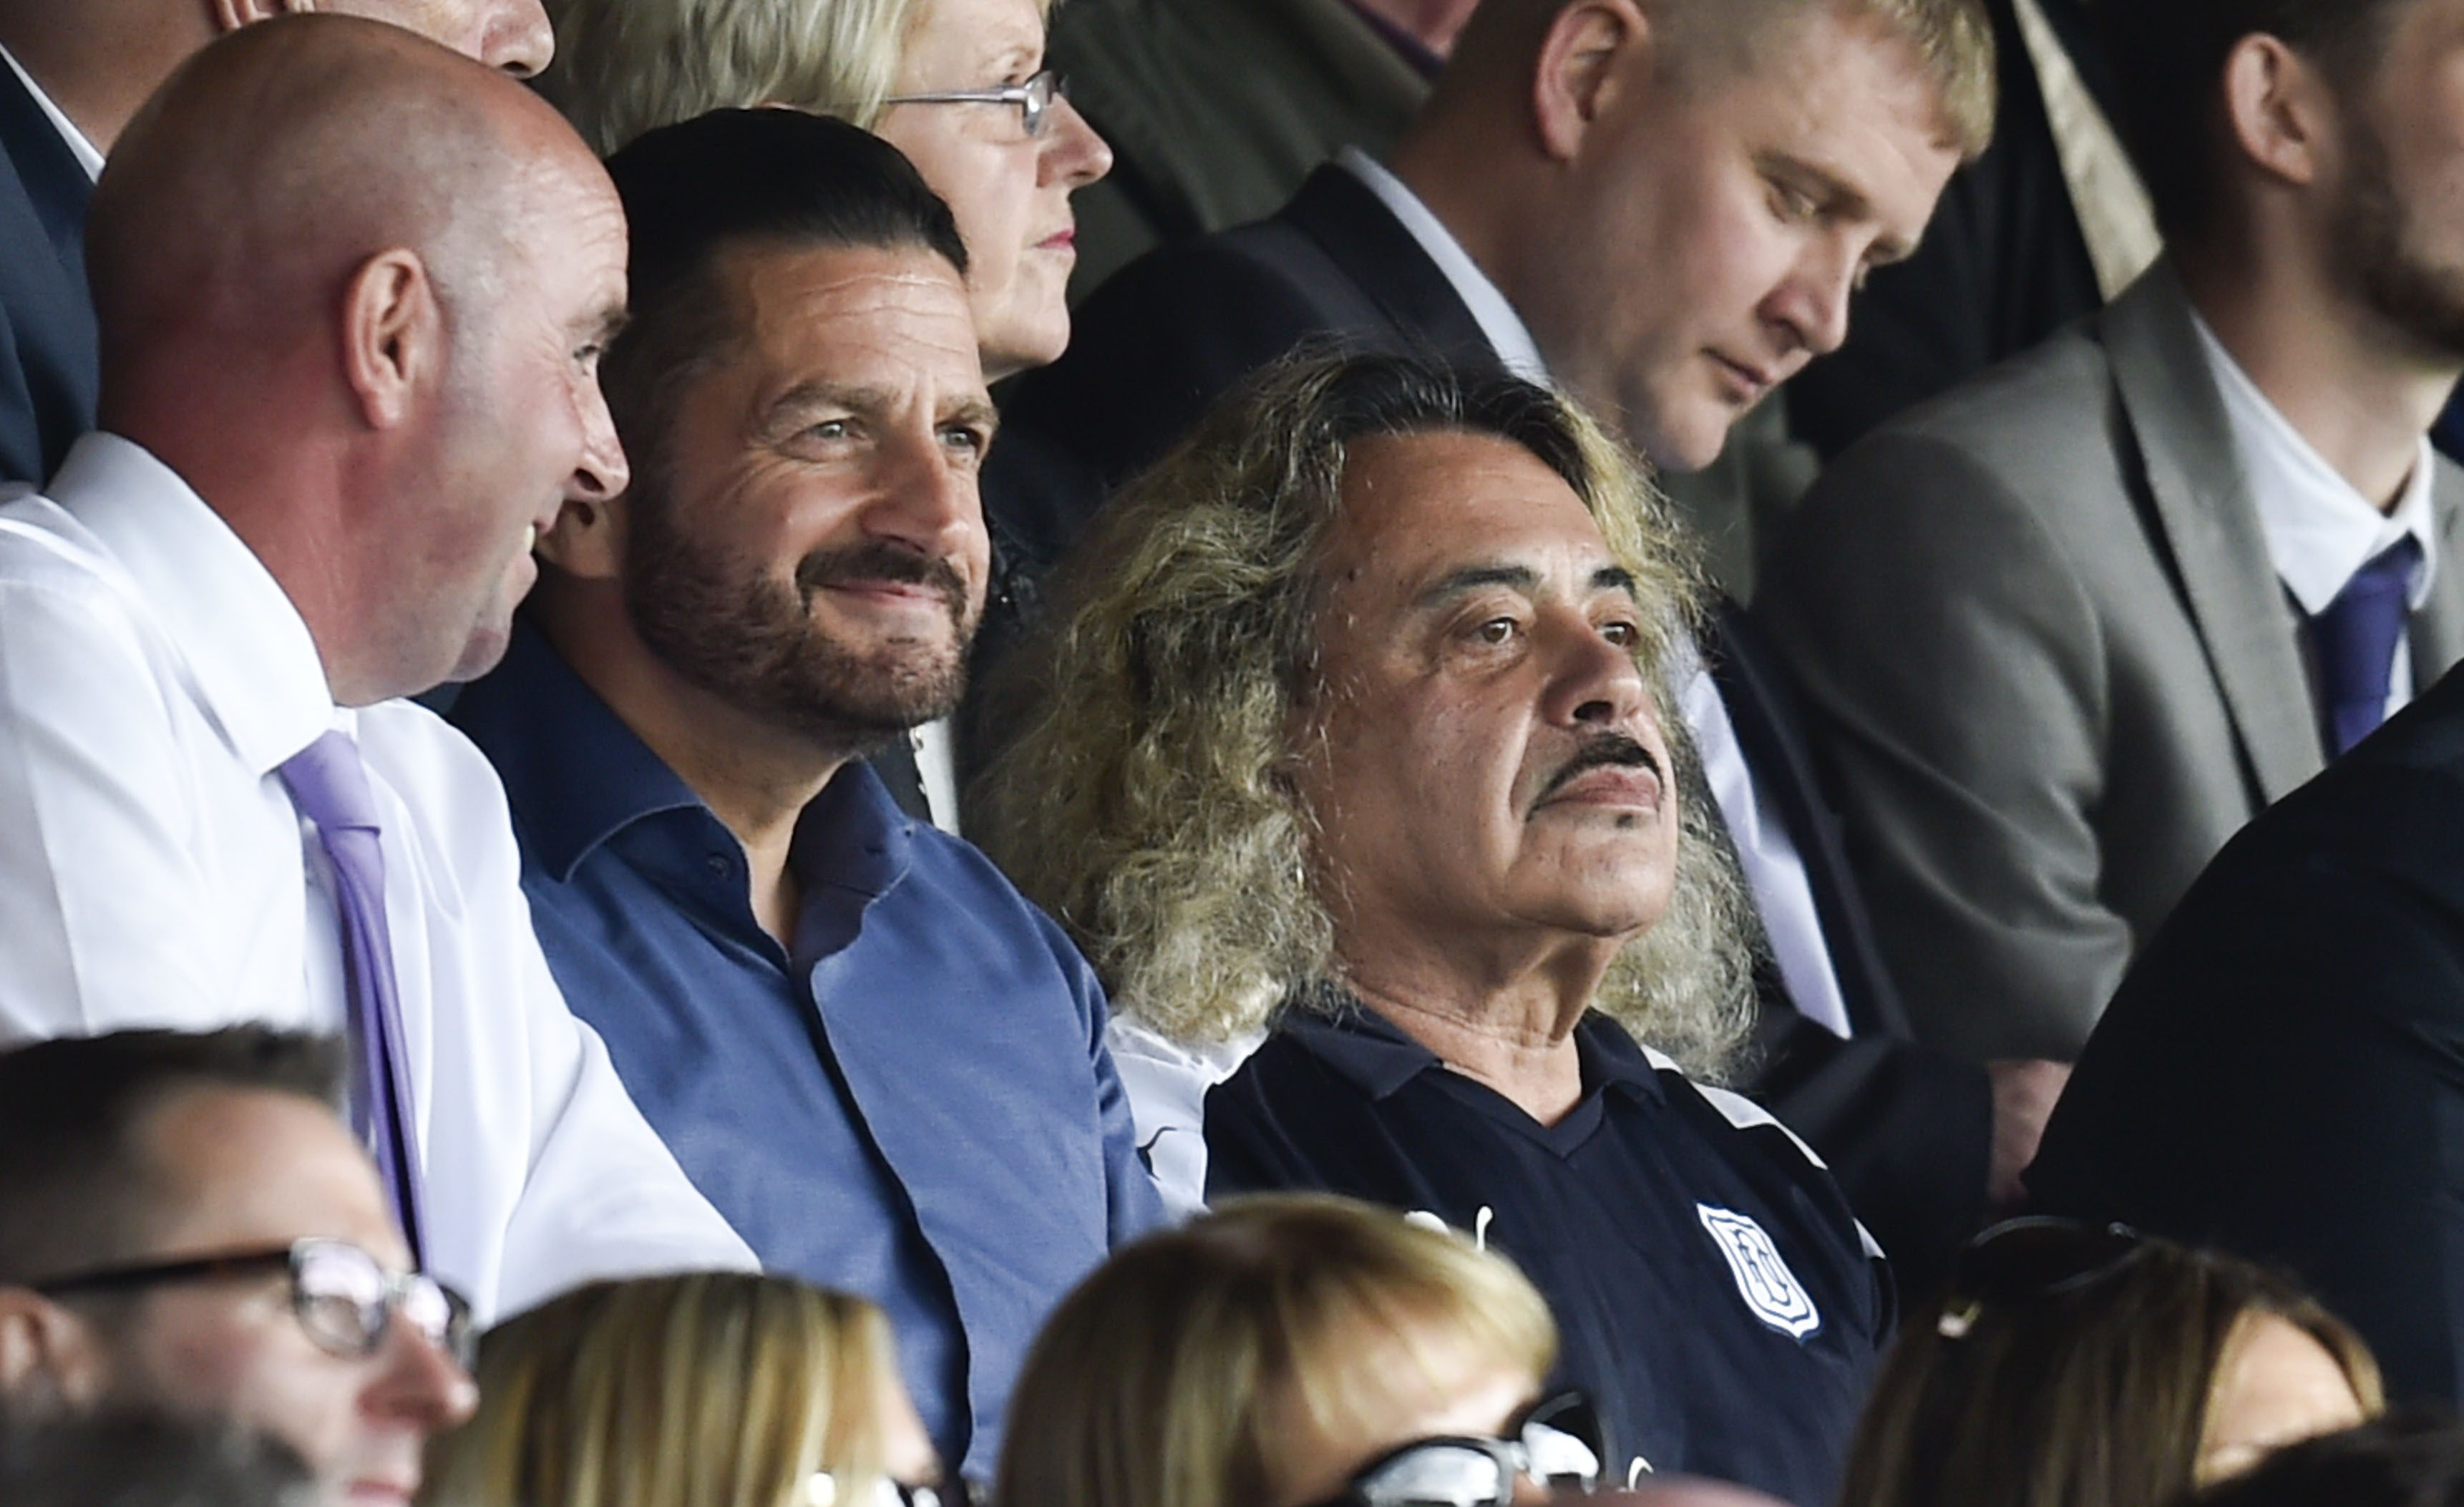 Paul Anderson (blue shirt) sits next to Wagner in the Main Stand.